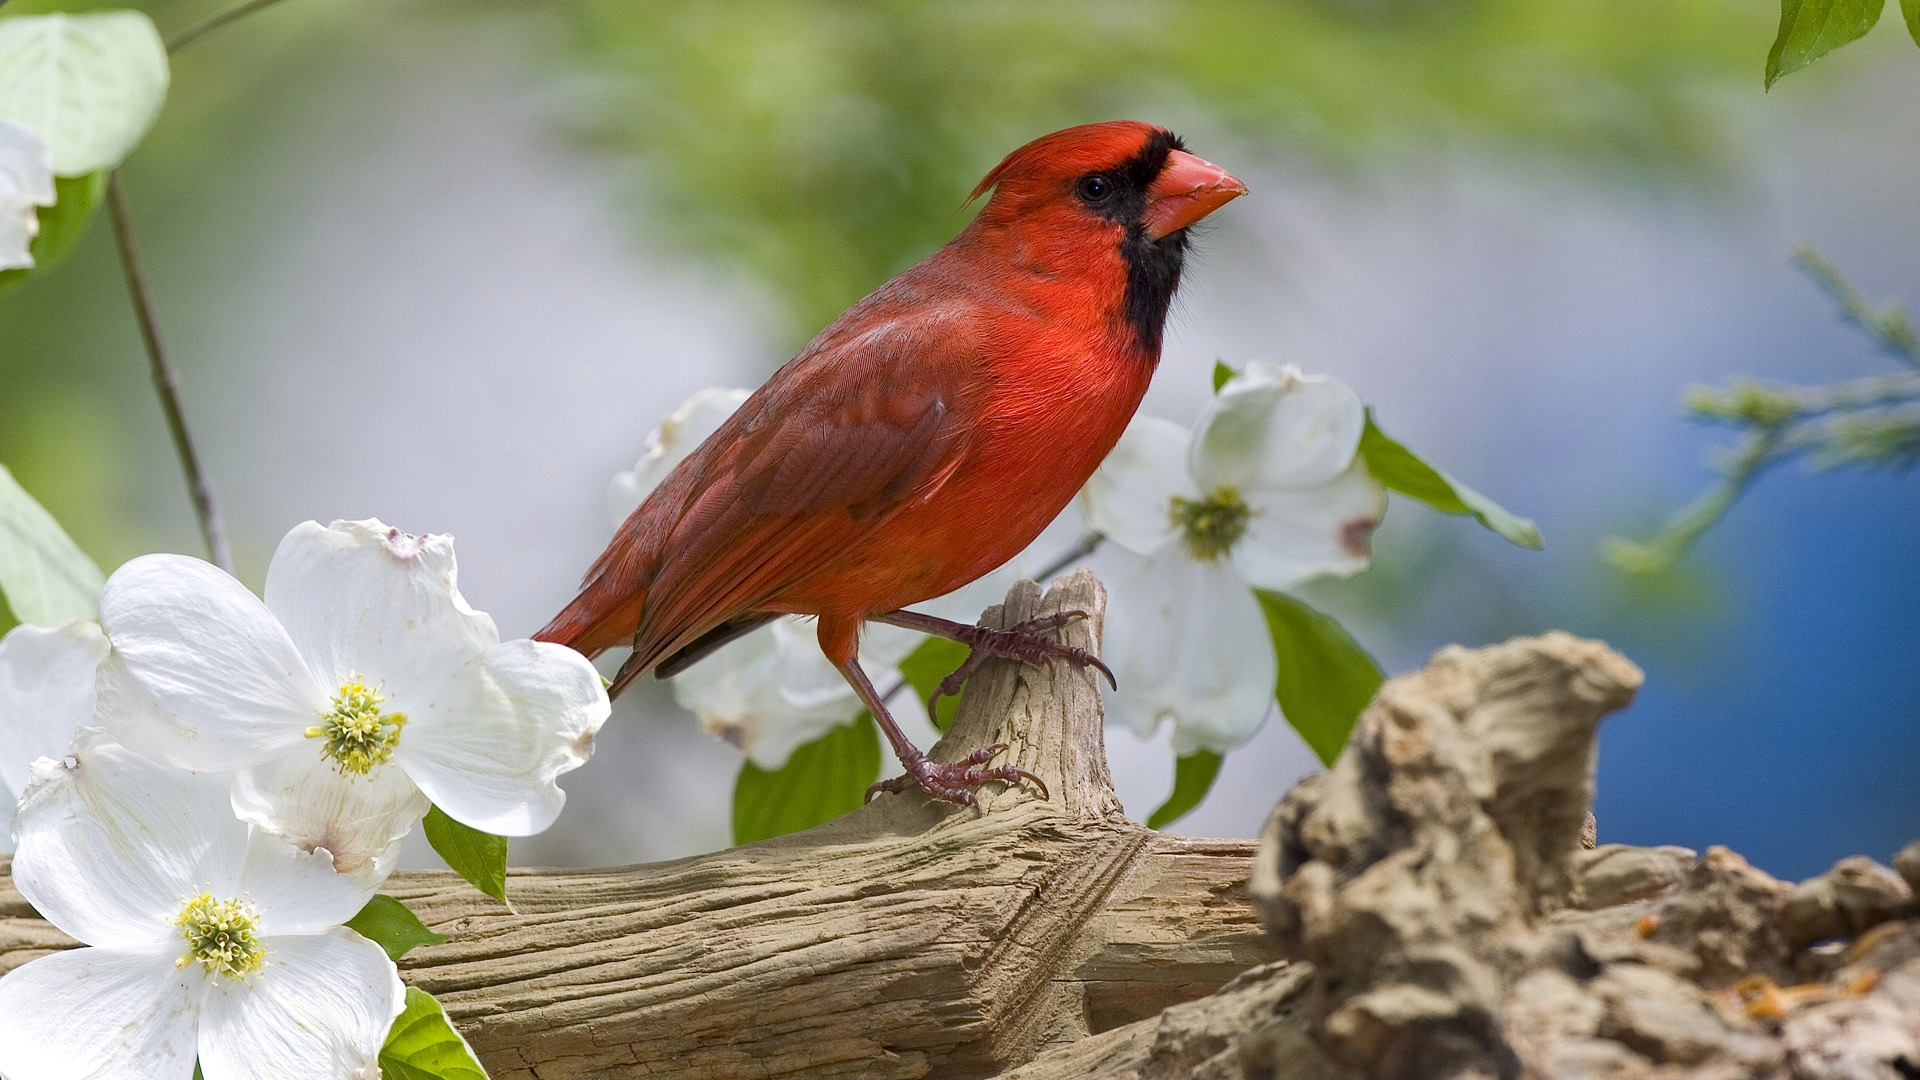 Animal Red Bird HD Wallpaper 1215   Ongur 1920x1080